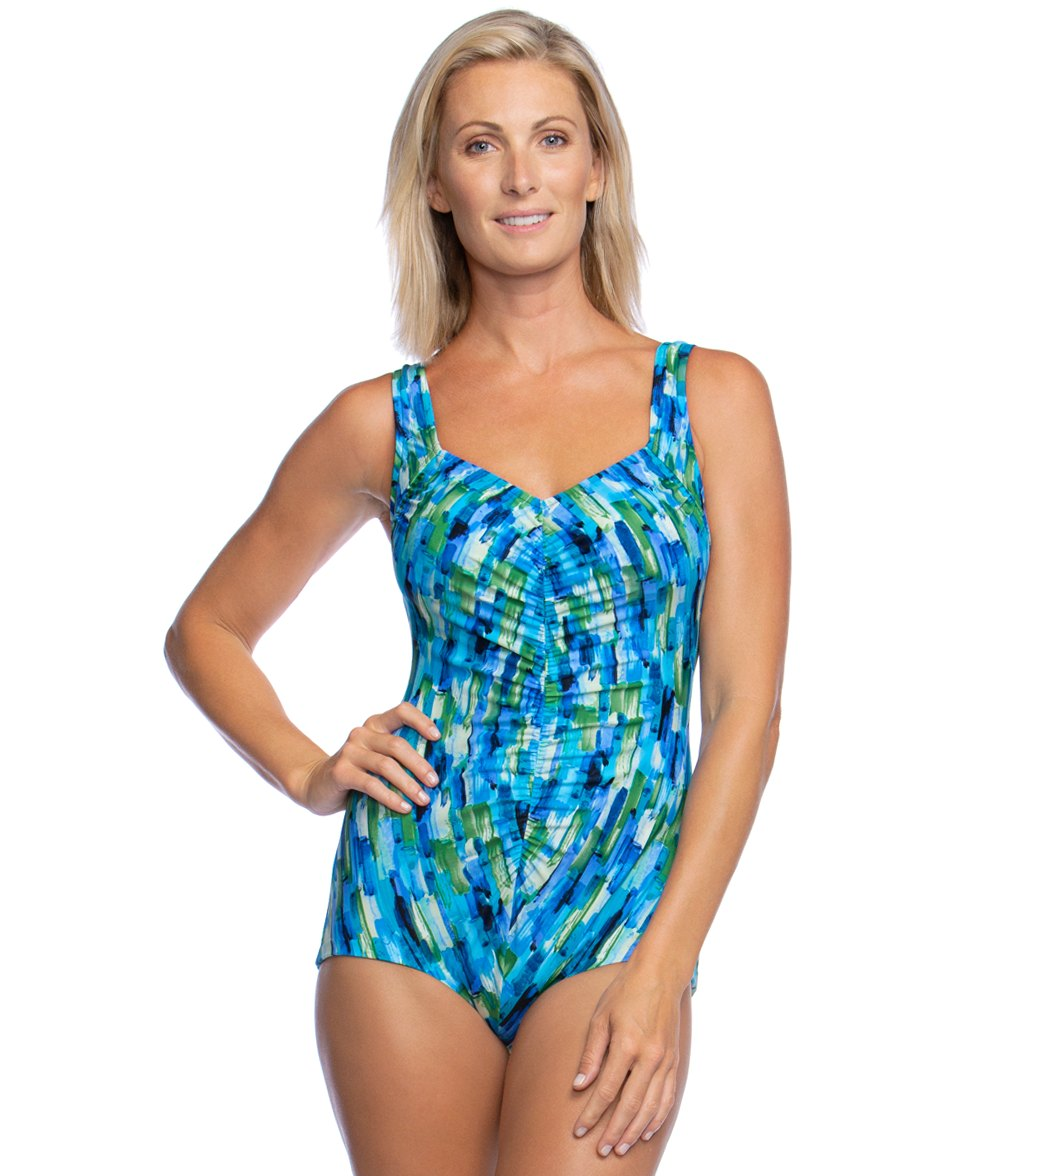 64edd7a1d9efb Maxine Funfetti Shirred Girl Leg One Piece Swimsuit at SwimOutlet.com